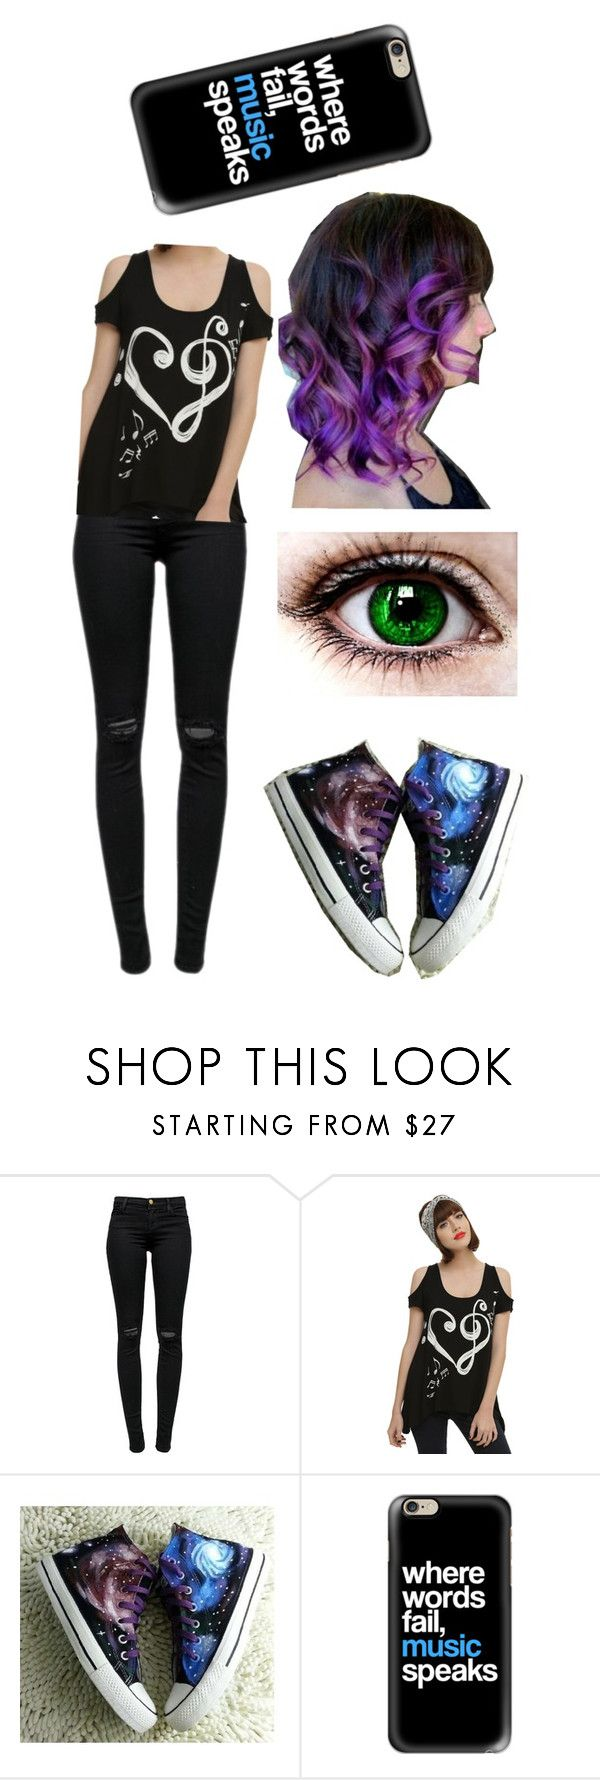 """""""Jillian """"Julie"""" Steele - OHSHC OC"""" by ss307 ❤ liked on Polyvore featuring J Brand, HVBAO, Casetify and plus size clothing"""